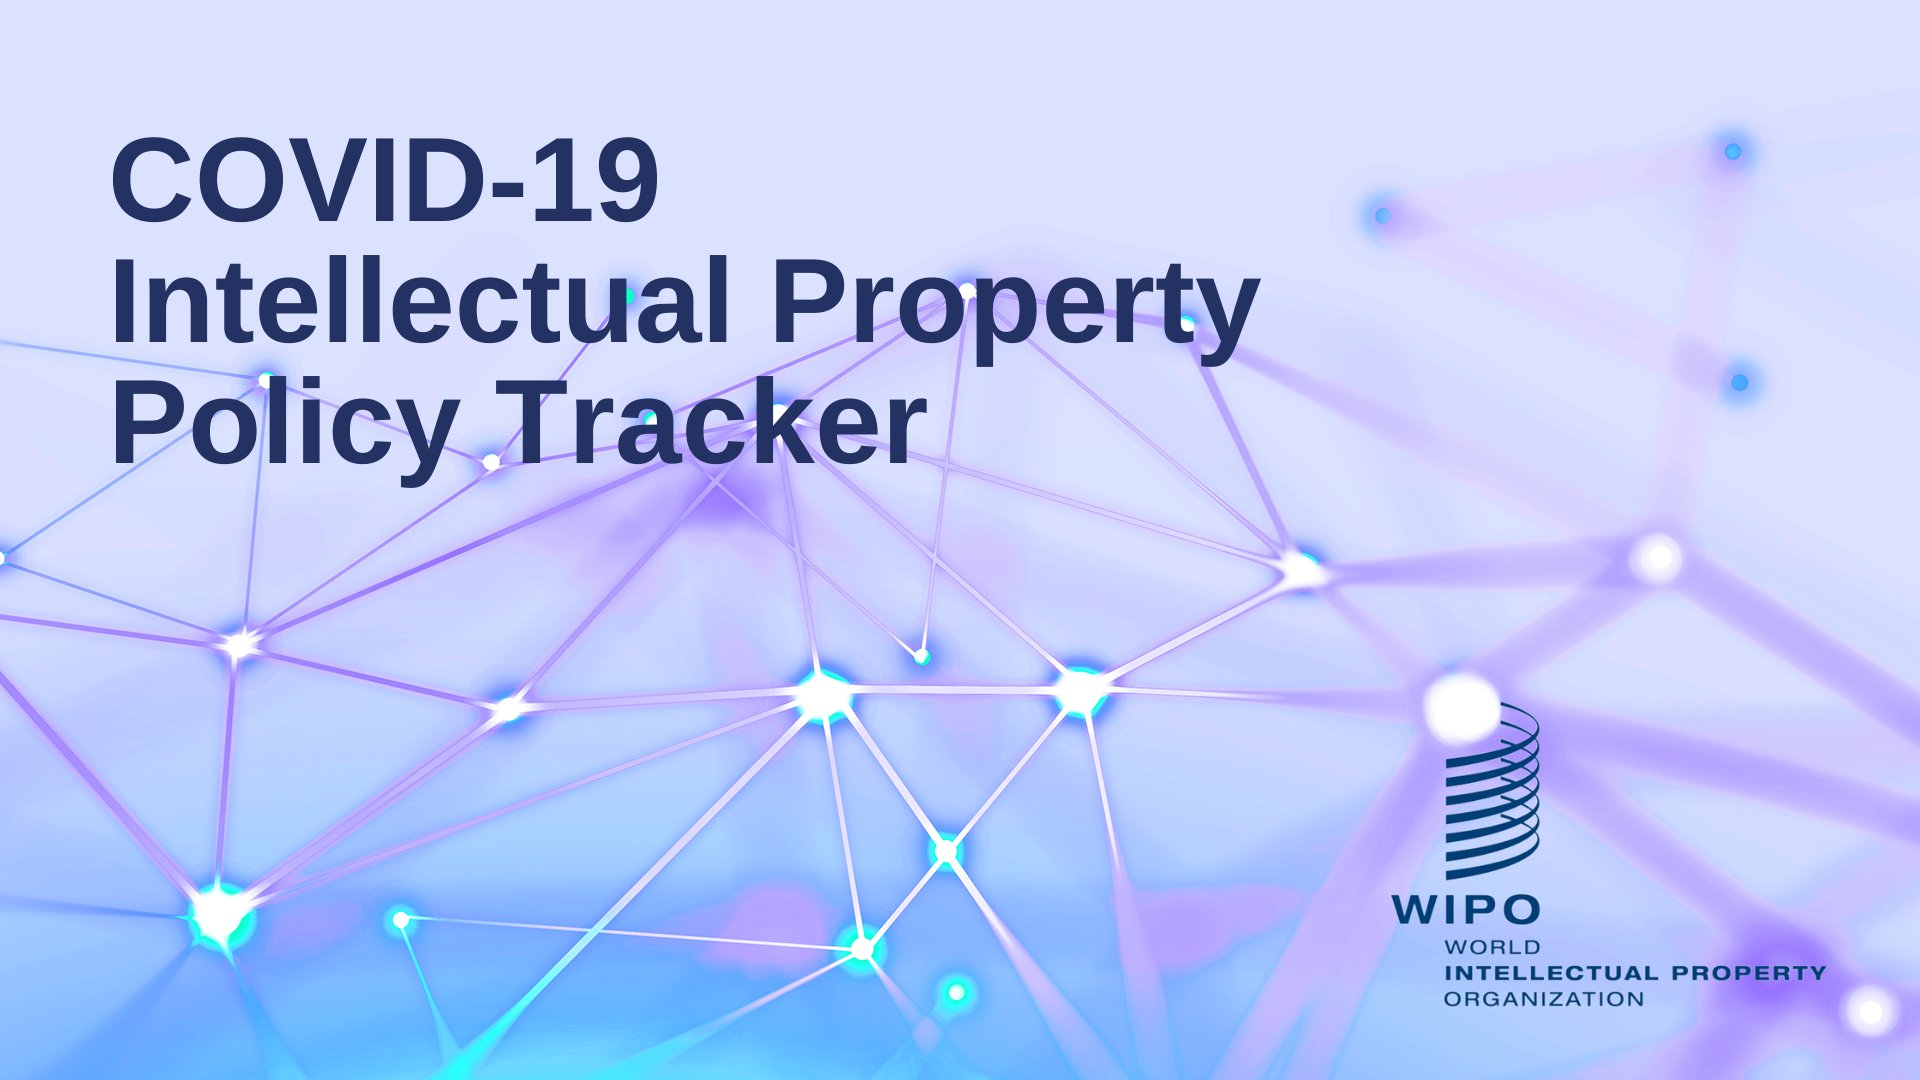 World Intellectual Property Organization Wipo Pa Twitter Did You Know Wipo Has Launched A Tool To Track Intellectual Property Policy Information In Member States During Covid 19 Pandemic Access The Covid 19 Ip Policy